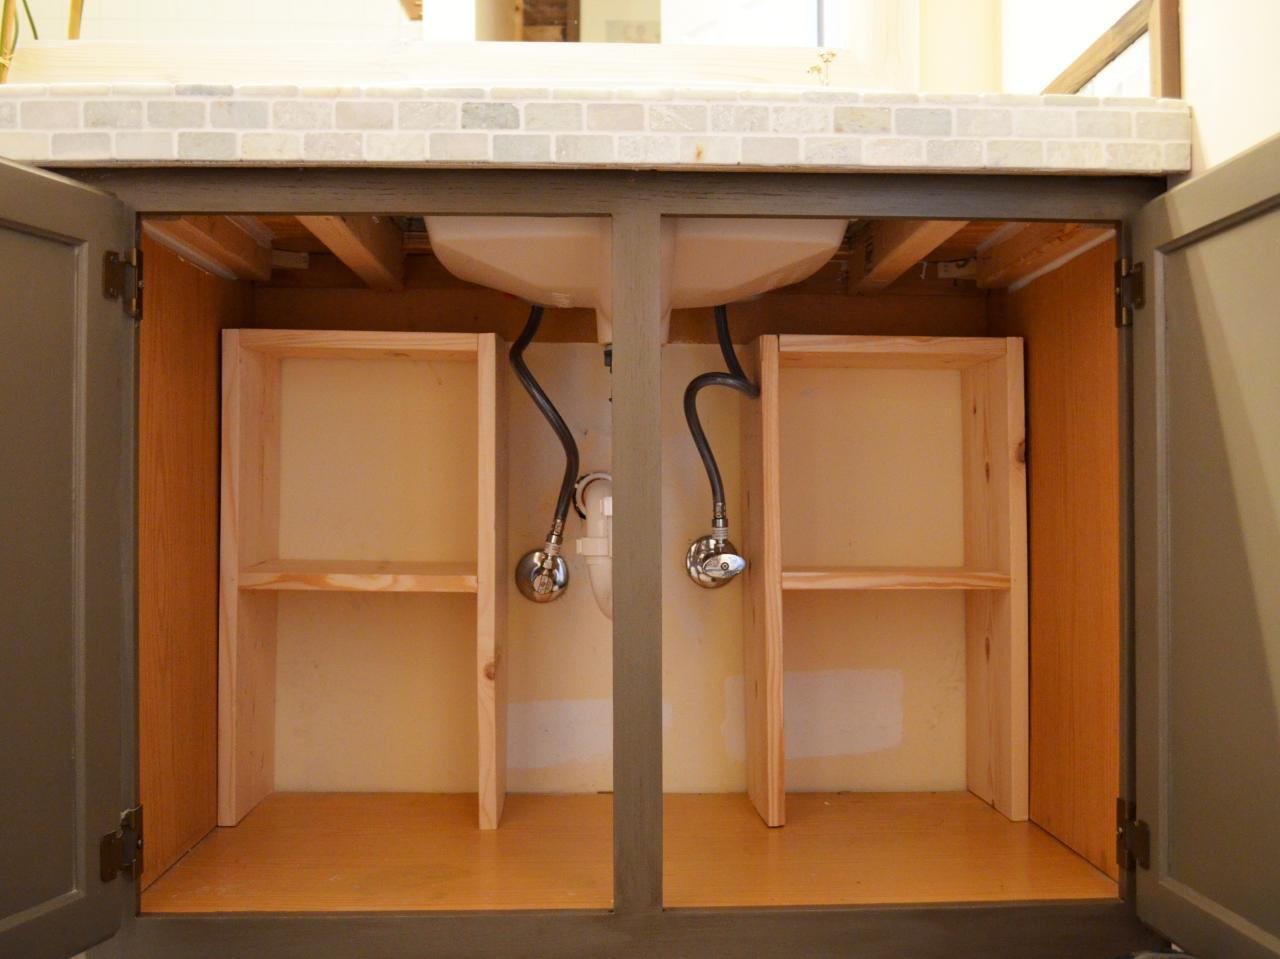 A step by step guide for creating storage under the sink Bathroom vanity cabinet storage